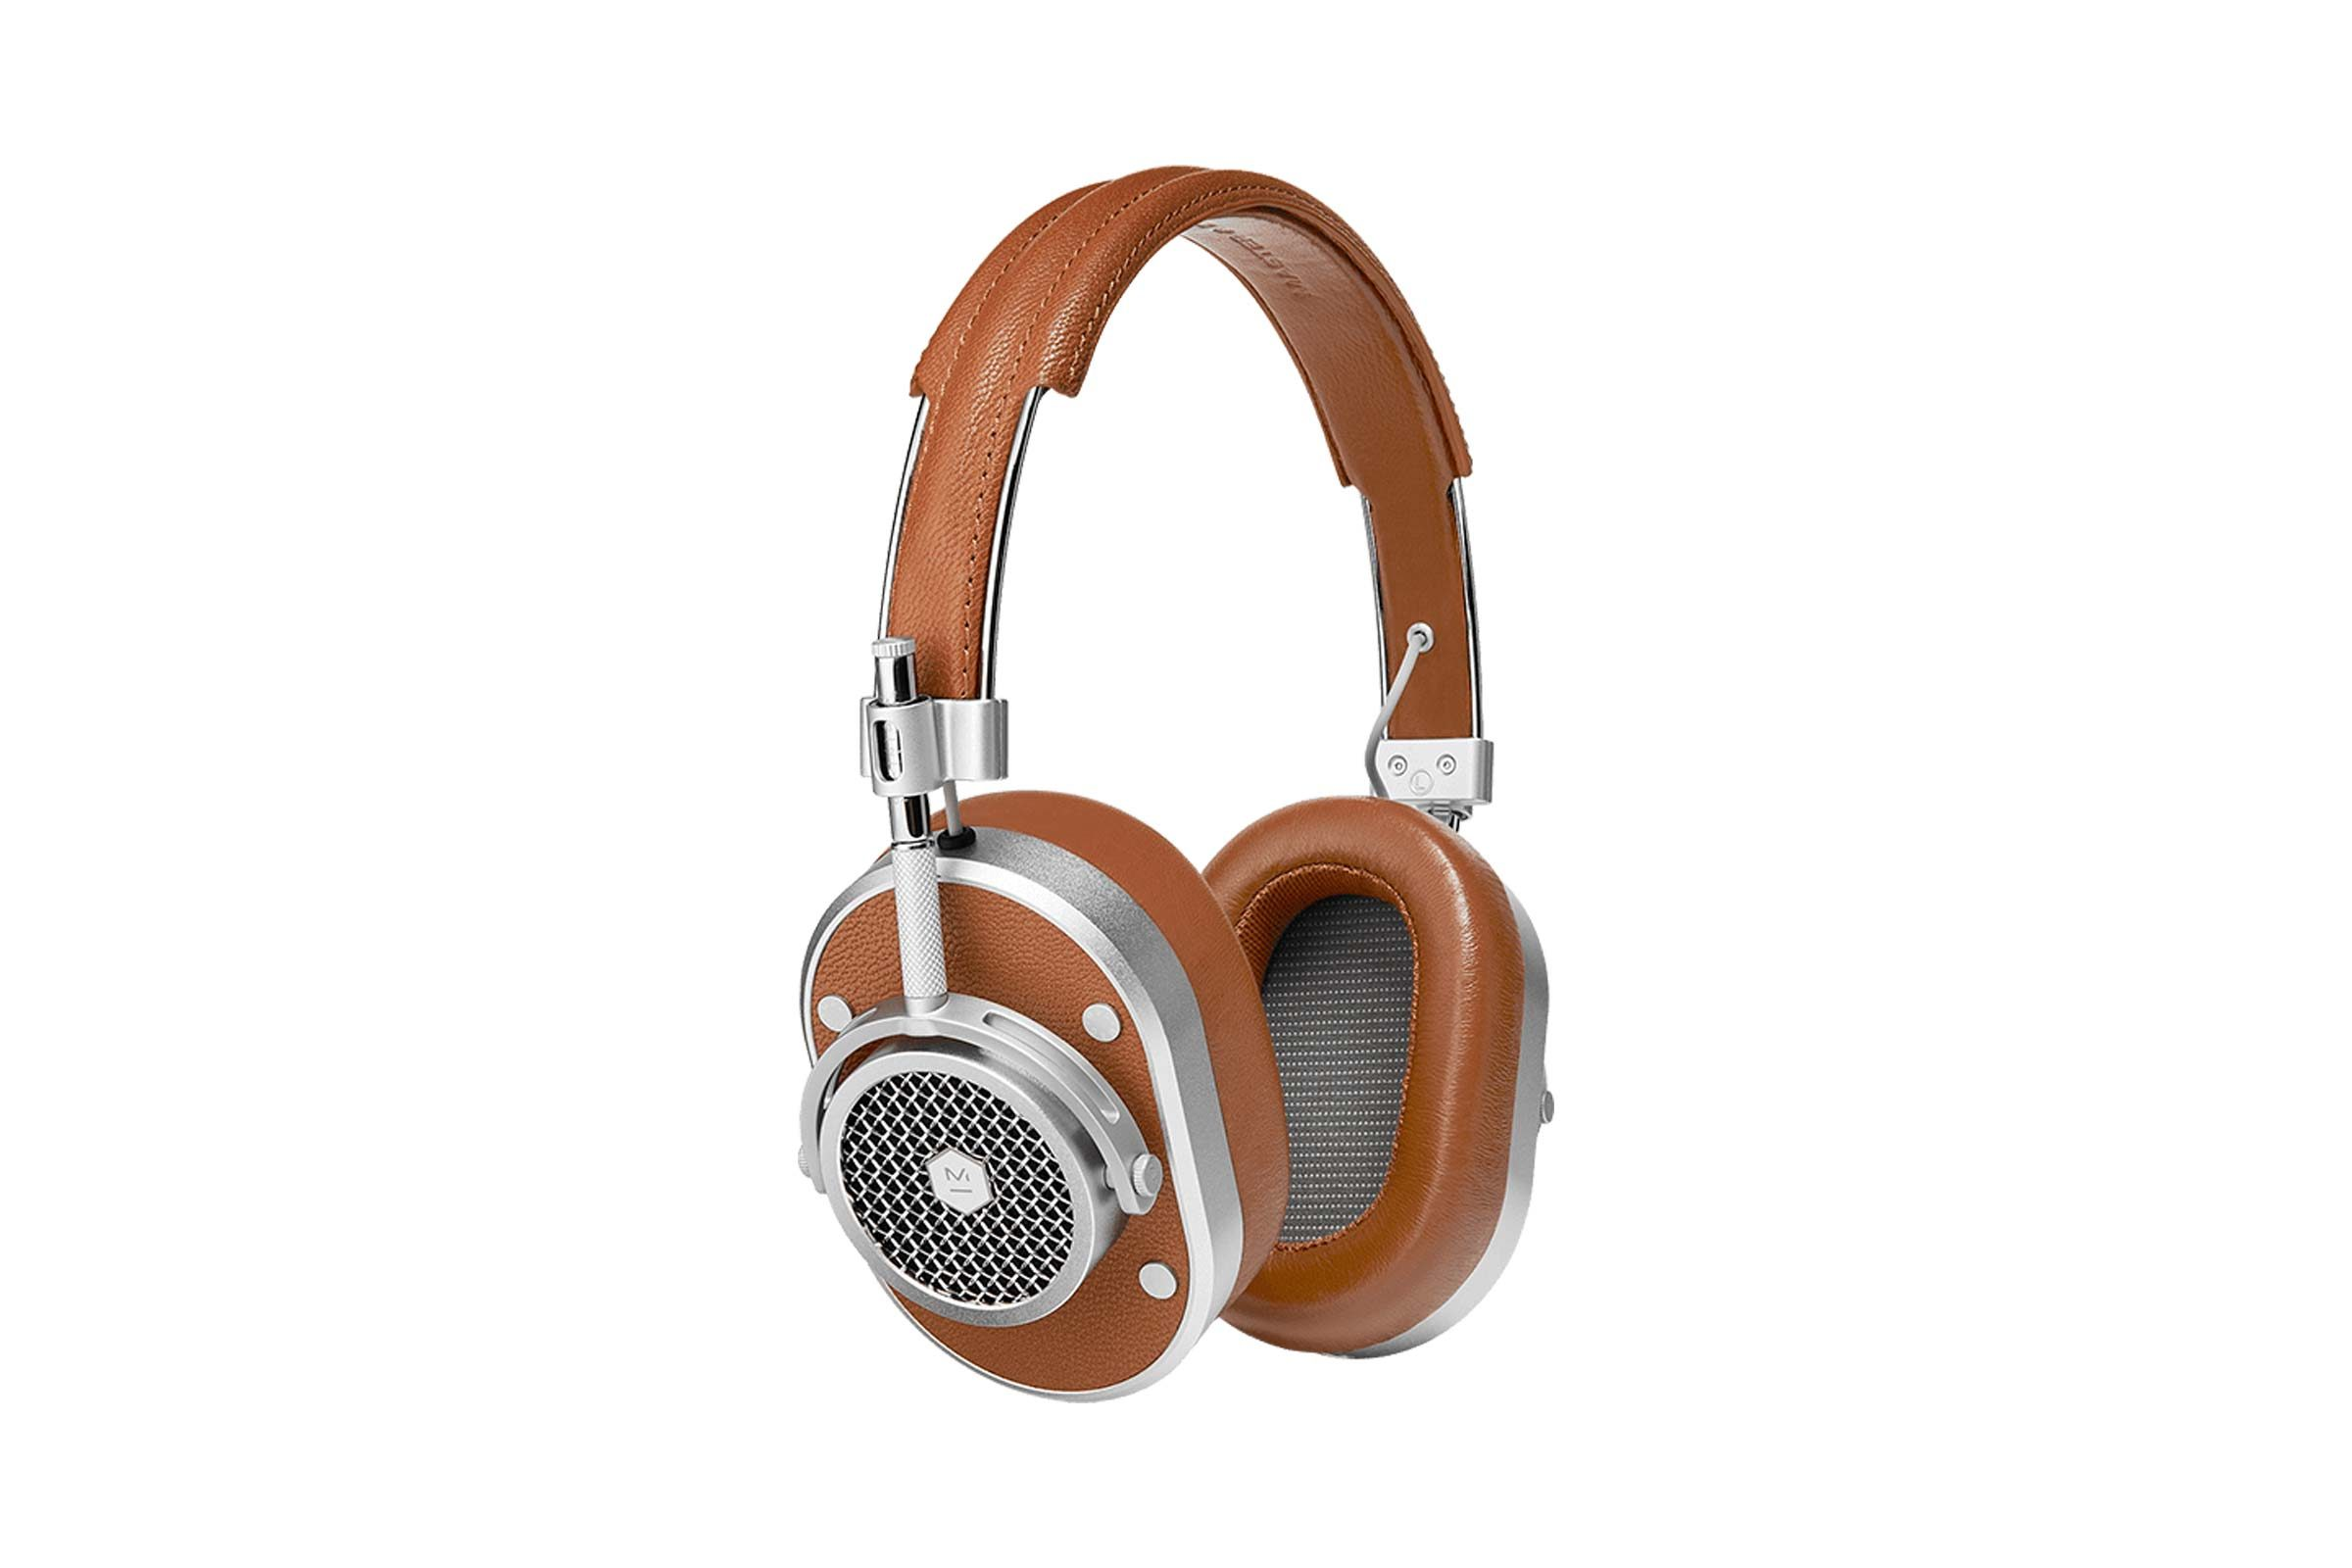 MH40 Noise Isolating Over Ear Headphones